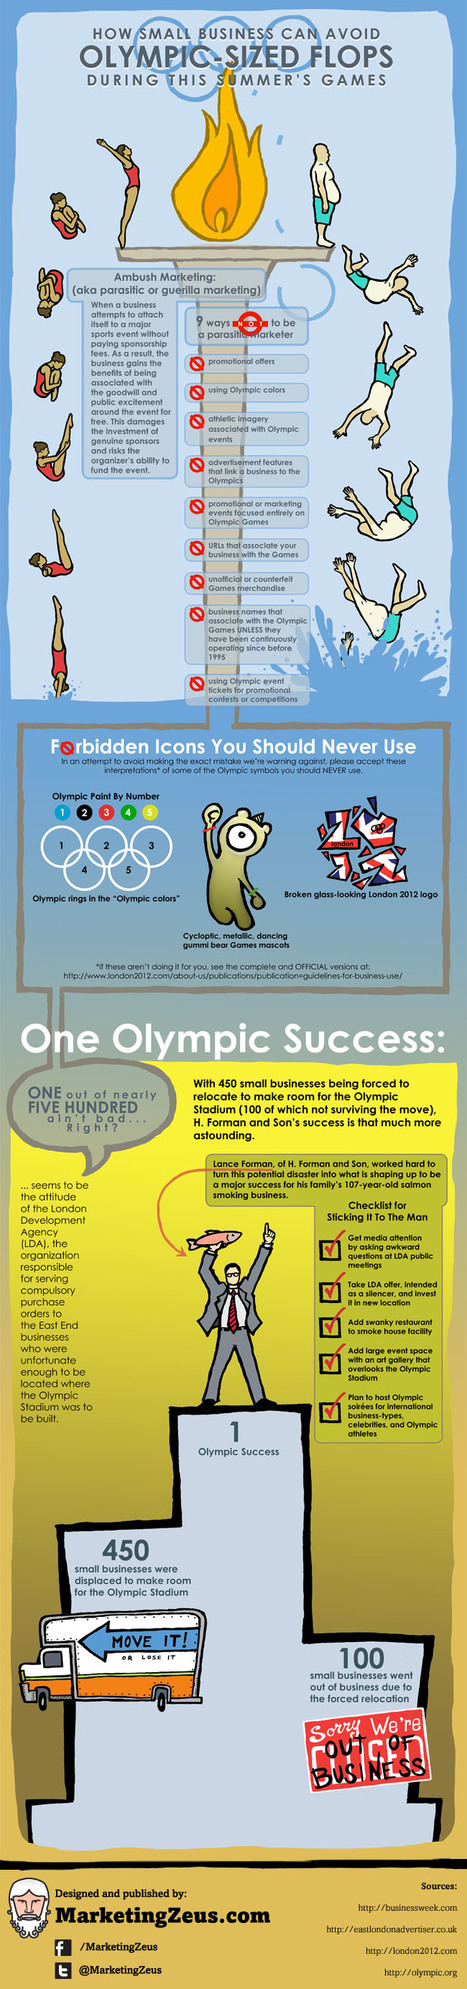 SMBs: Avoid Olympics-Sized Flops During the Summer Games | Marketing & Webmarketing | Scoop.it